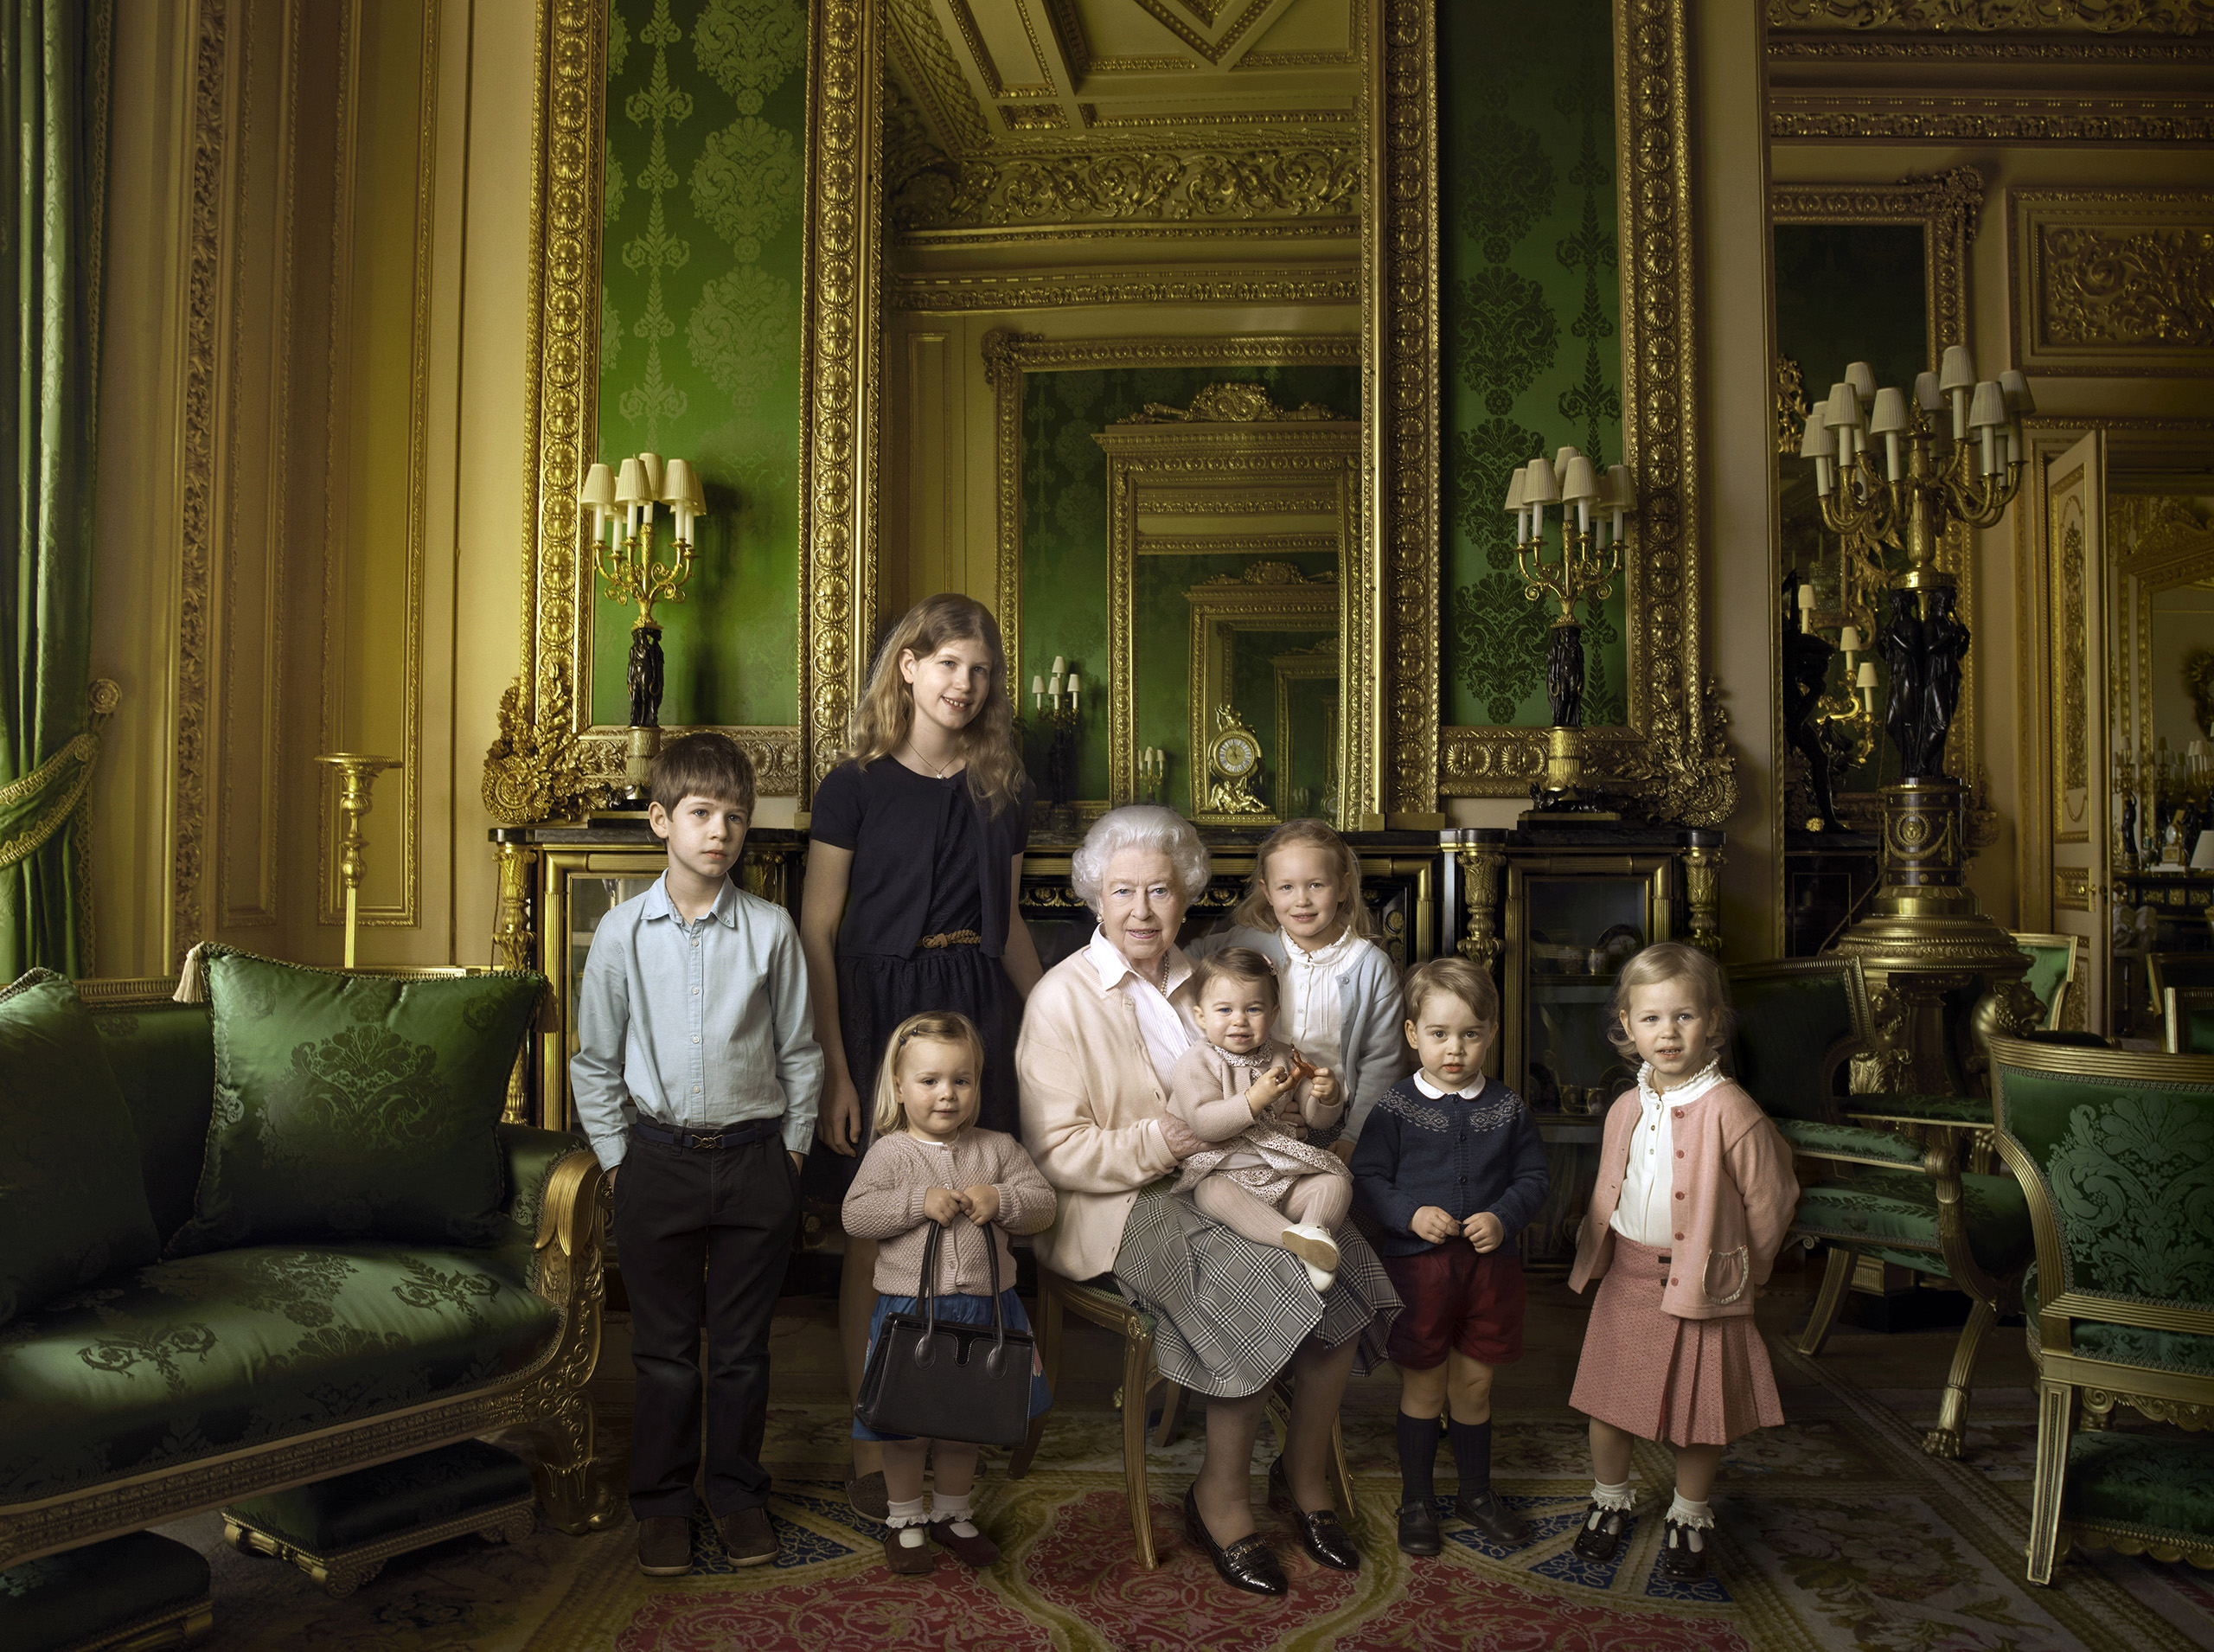 This official photograph released by Buckingham Palace to mark Queen Elizabeth II's 90th birthday shows her five great-grandchildren and her two youngest grandchildren in the Green Drawing Room, part of Windsor Castle's semi-State apartments, April 20, 2016.